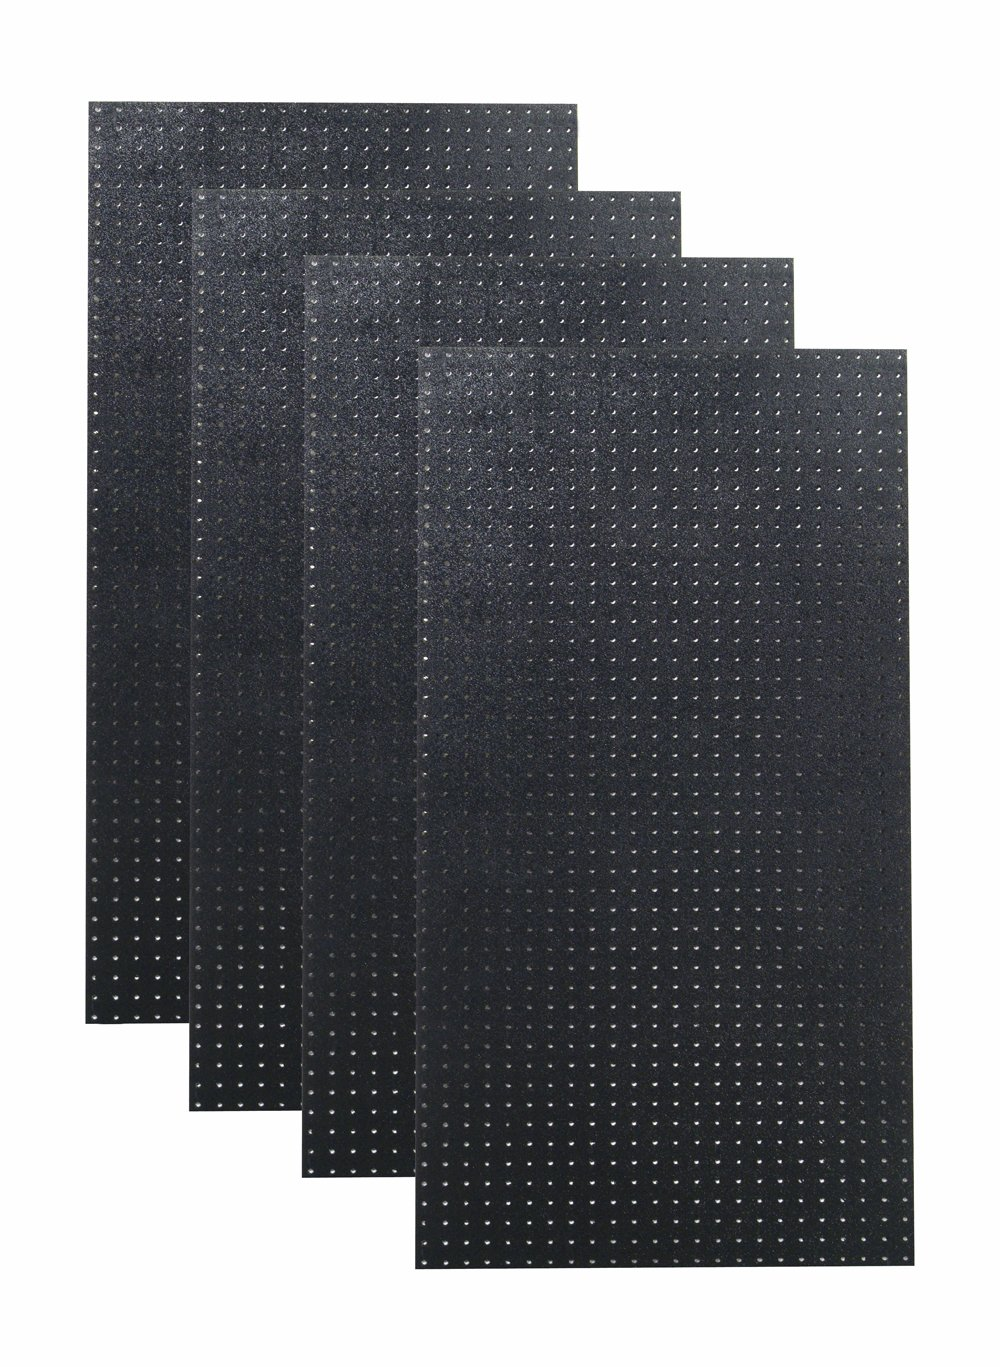 Triton Products DB-4BK Polyethylene Pegboards Matte Front Texture with 9/32'' Hole and 1'' O.C. Hole Spacing, 24 x 48 x 3/16'', Black